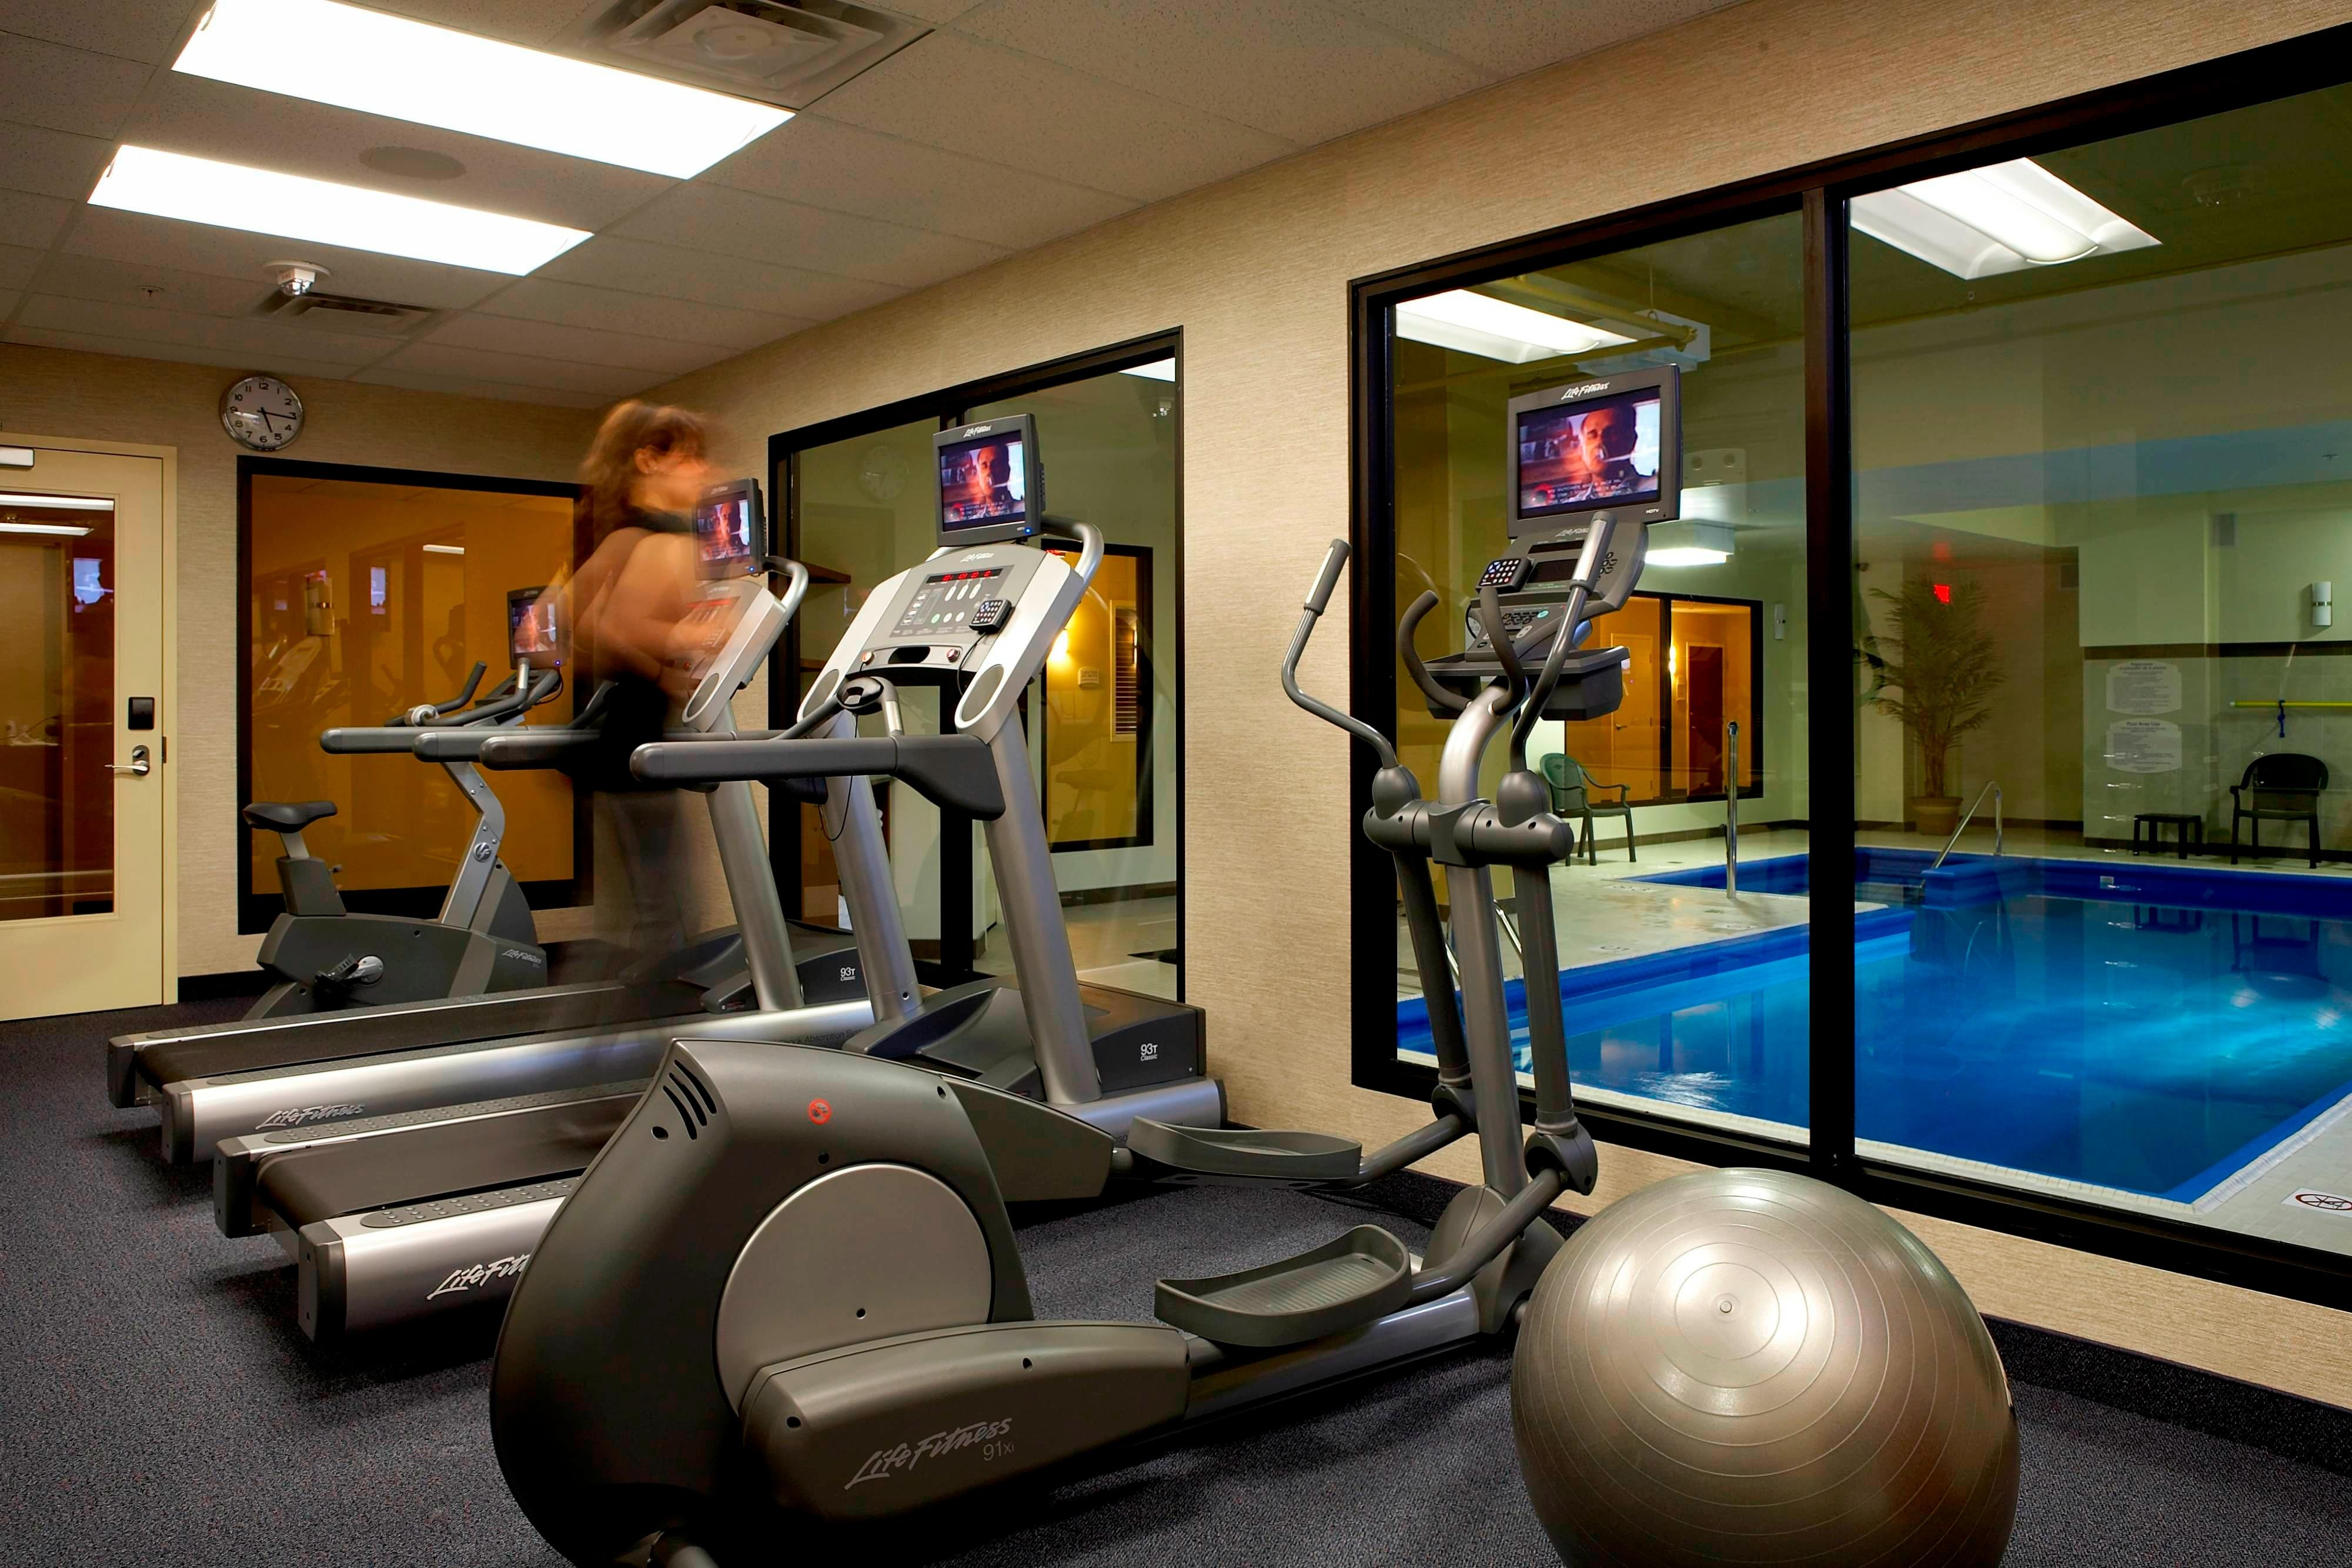 Montreal airport hotel fitness center